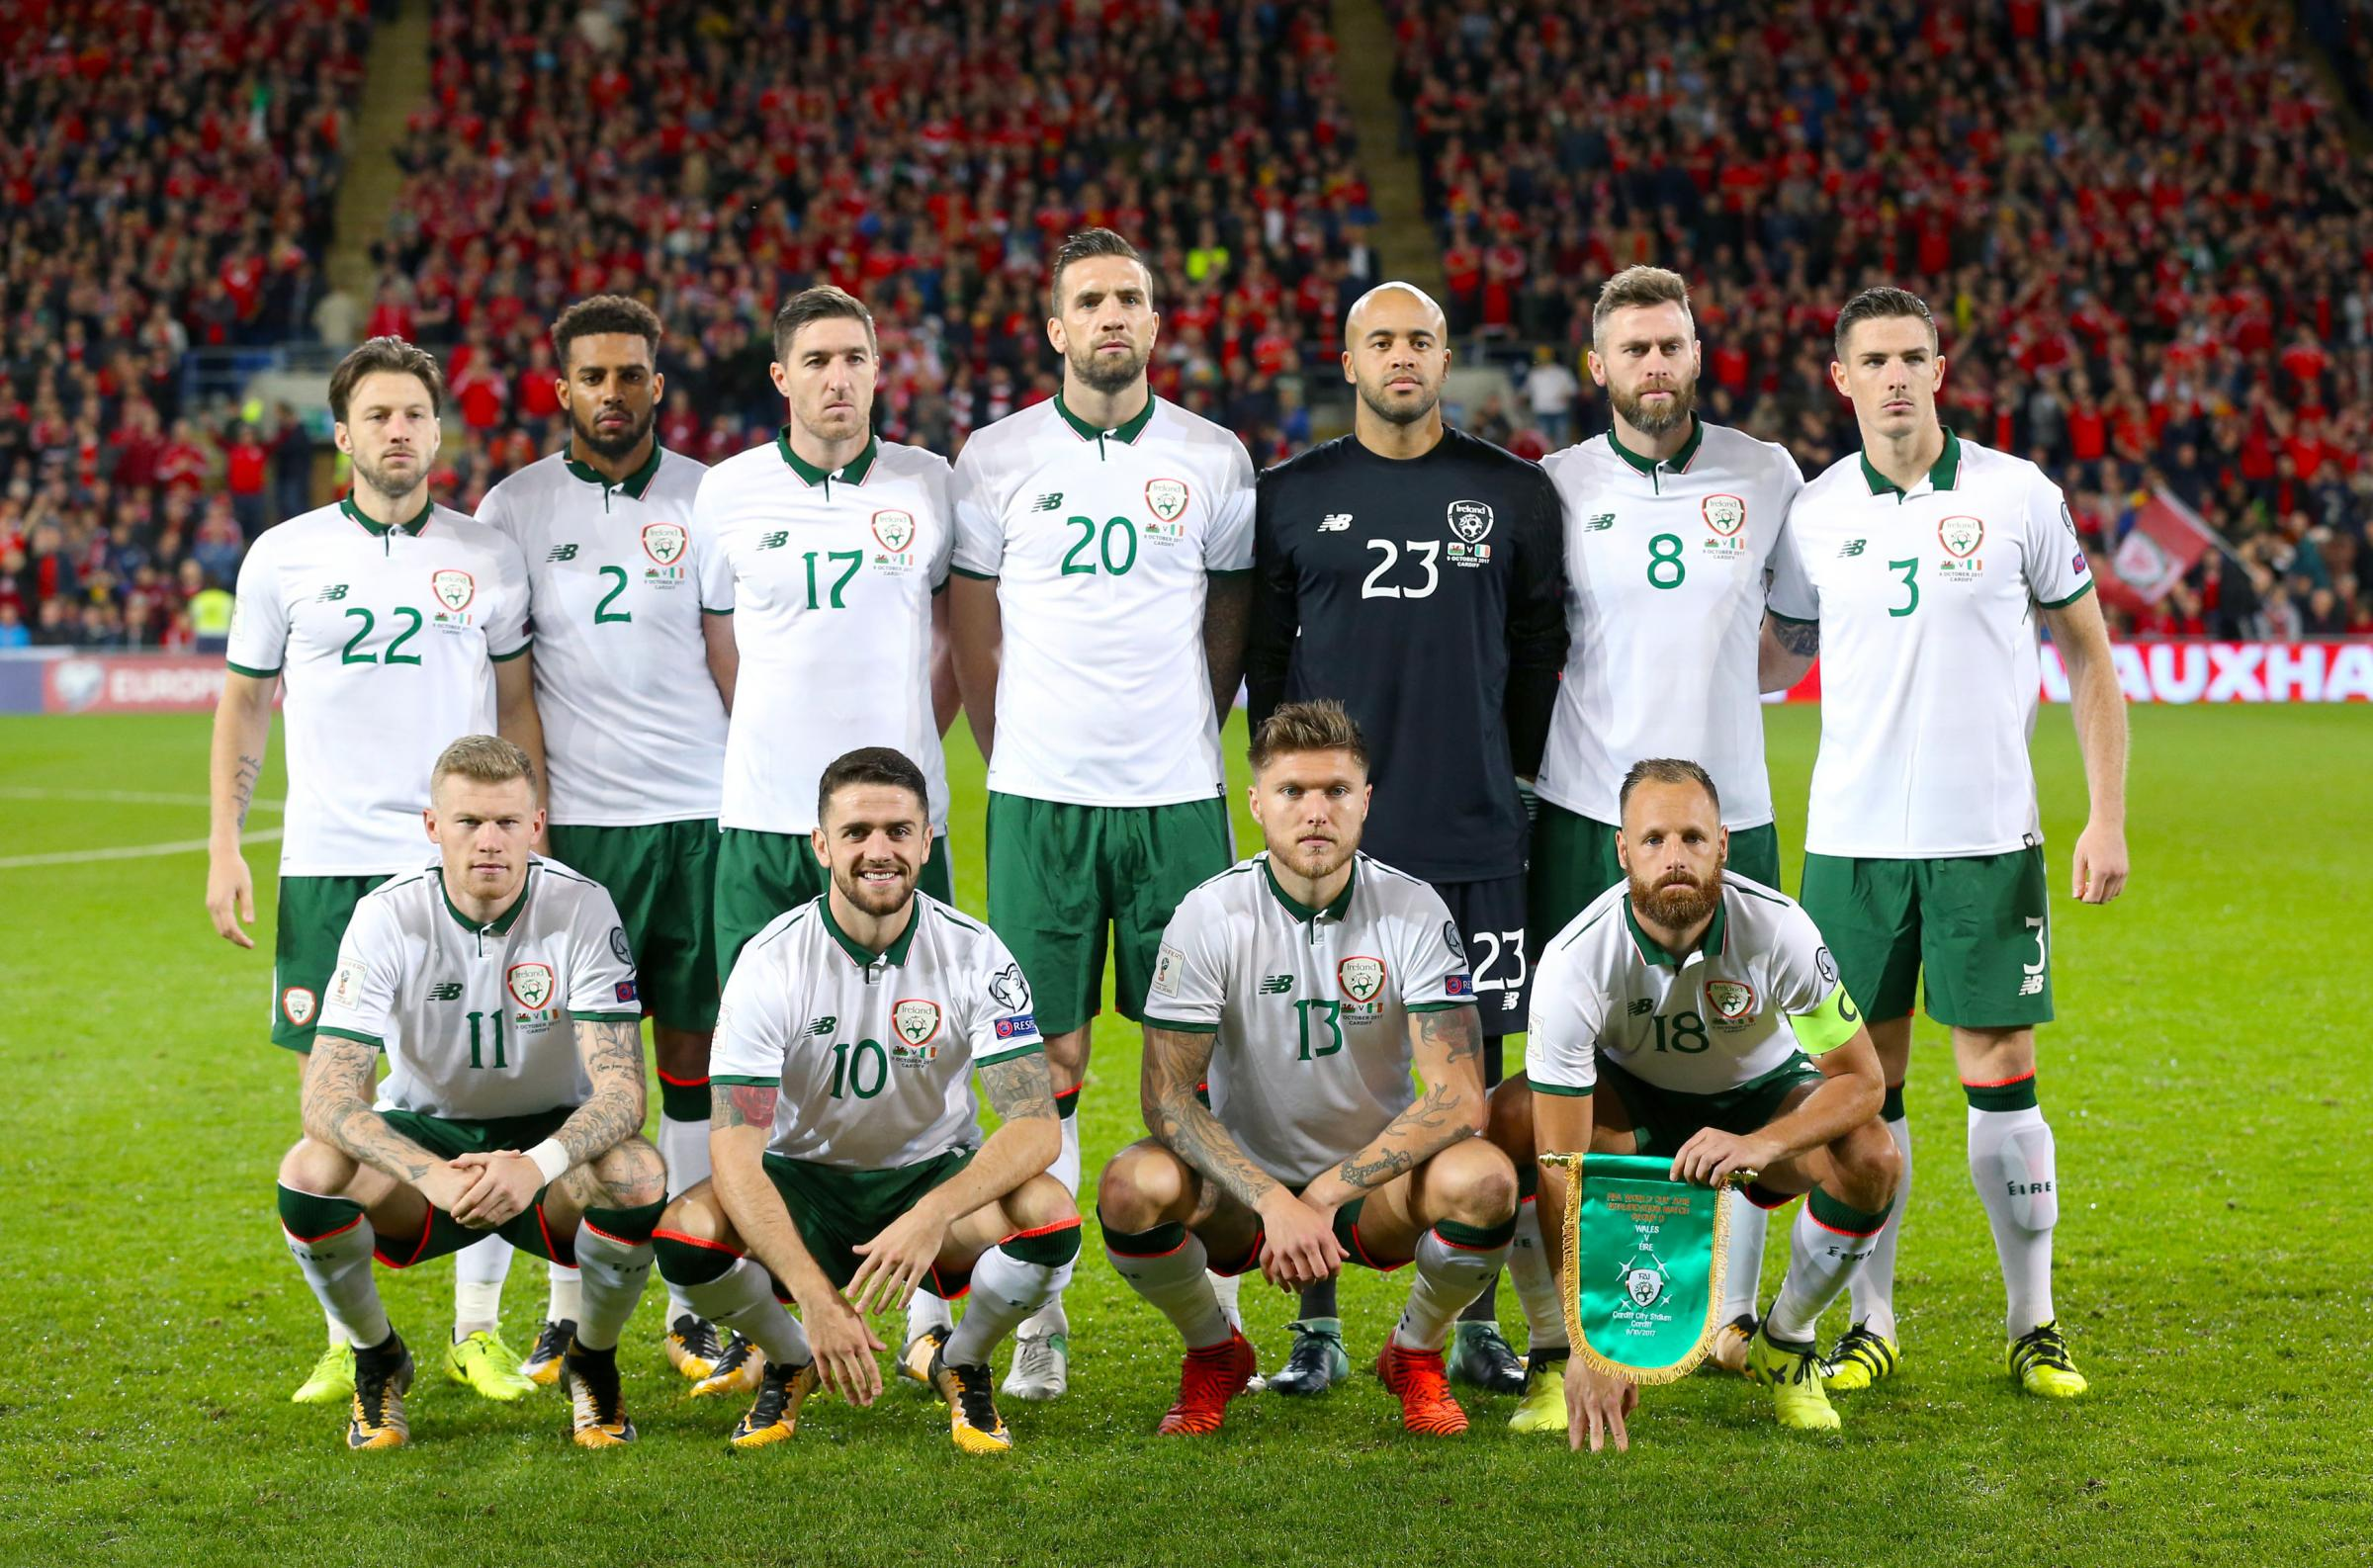 IRISH EYES ARE SMILING: Darren Randolph and Cyrus Christie were both part of the Ireland team that claimed a World Cup play-off place with a win over Wales earlier this month